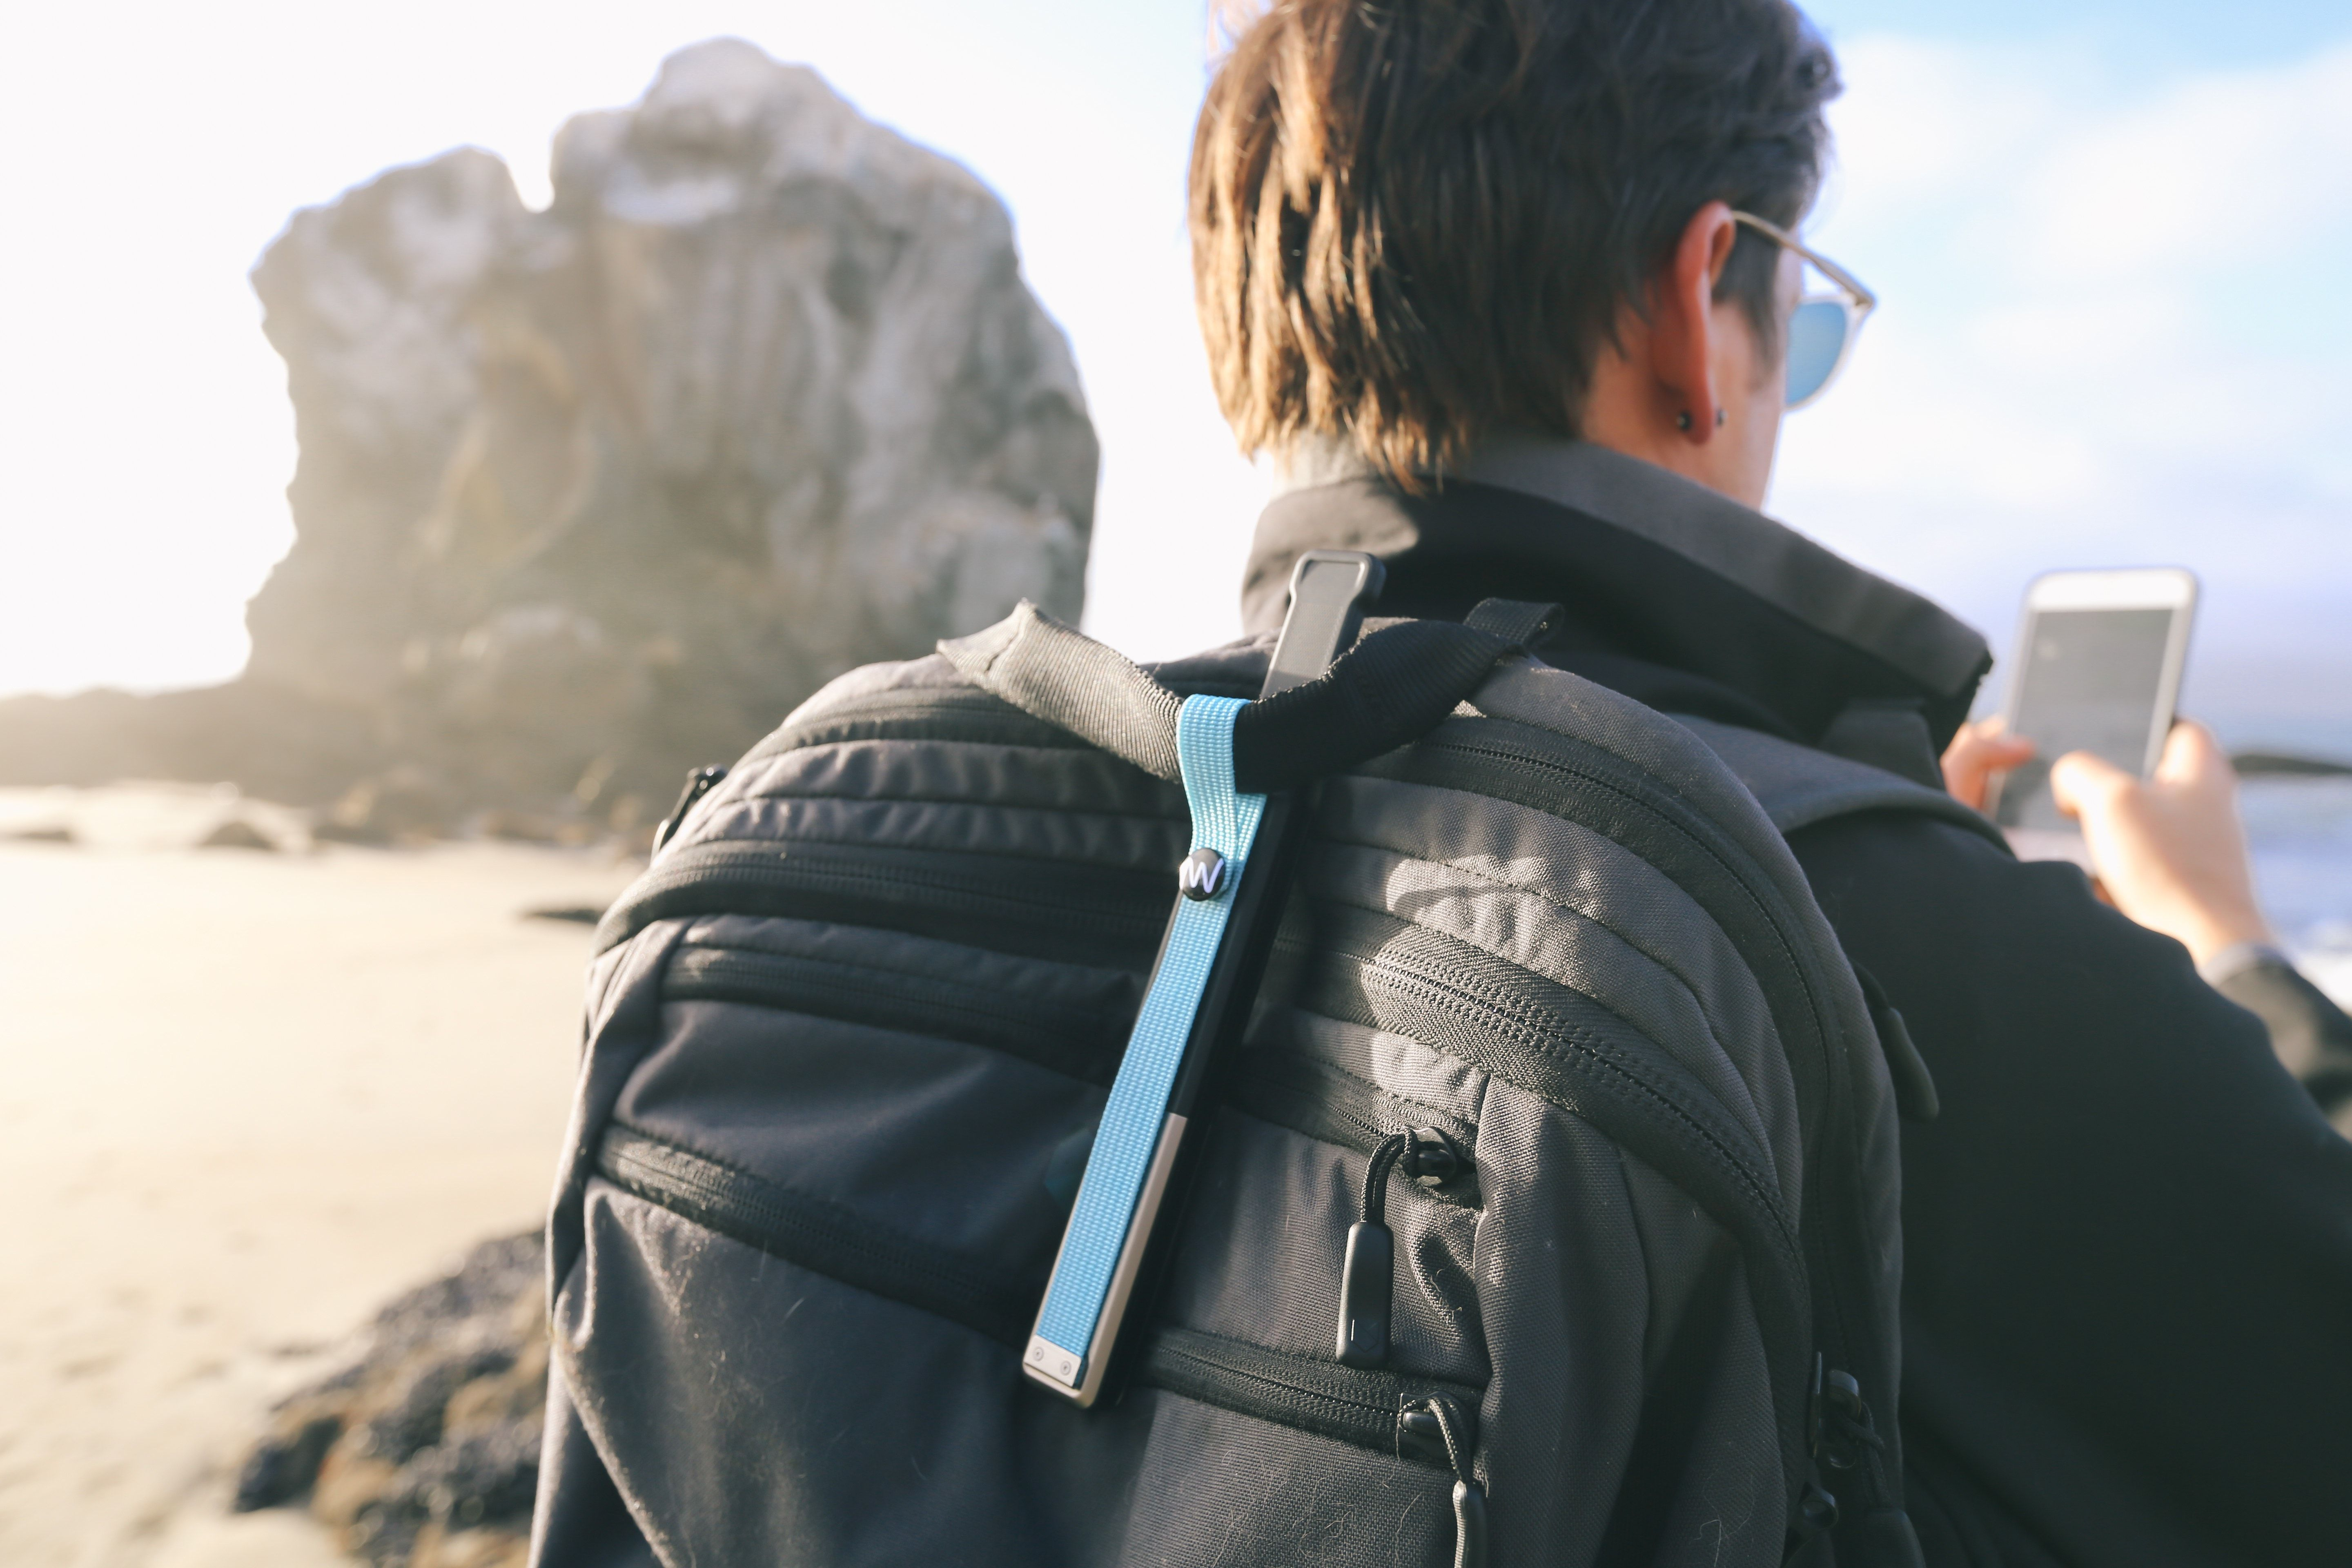 goTenna enables you to use your smartphone to text & share